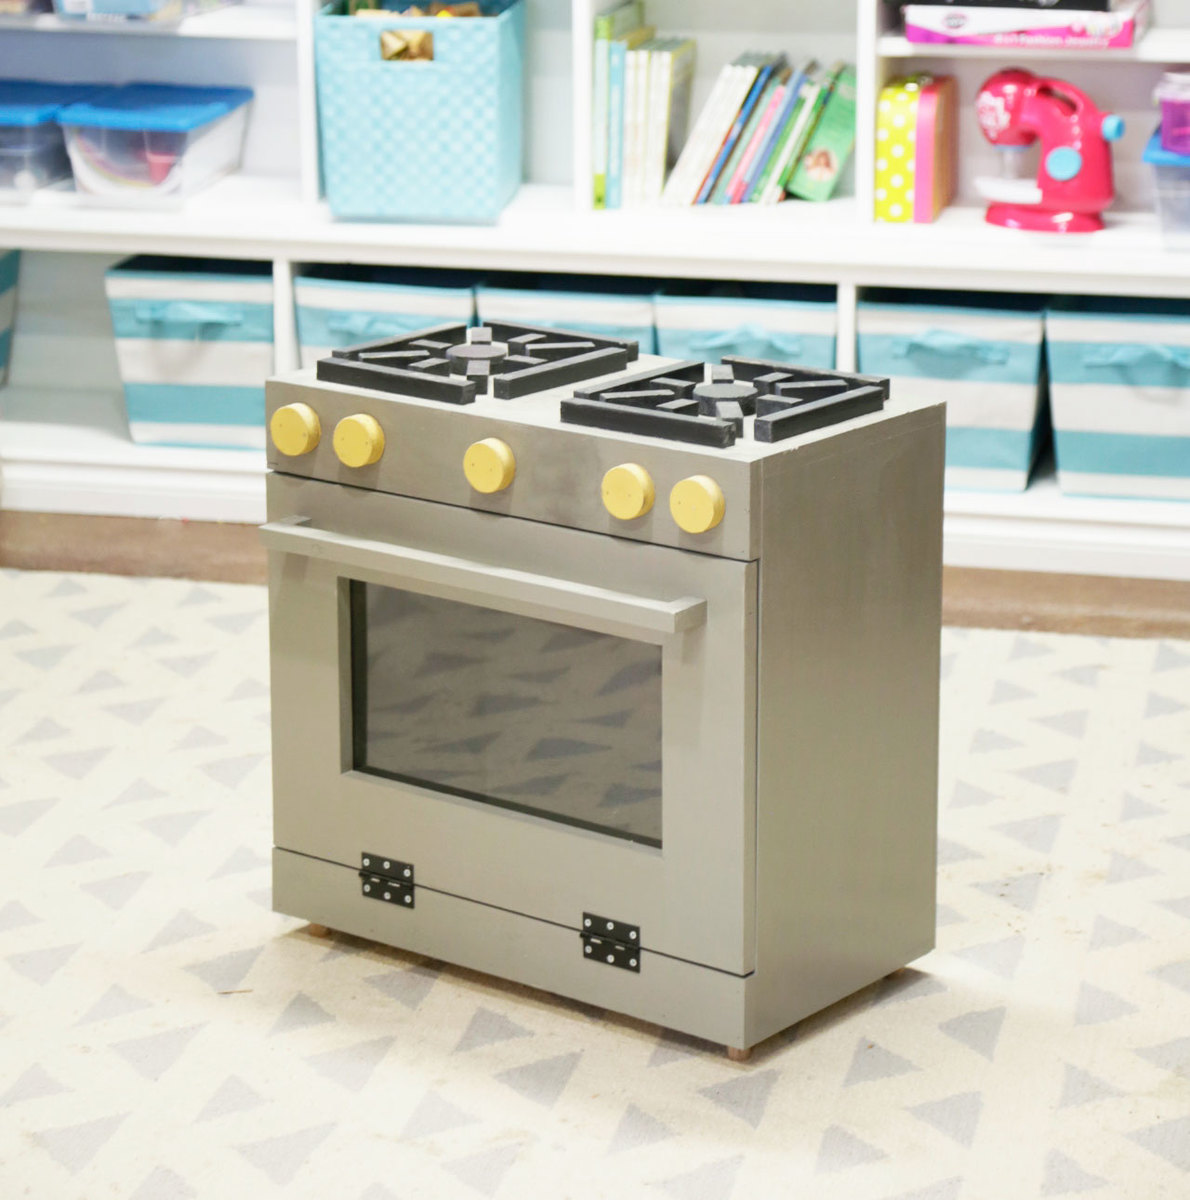 Wood Play Kitchen White Ana White  Foodie Play Kitchen Stove Wood Toy  Diy Projects